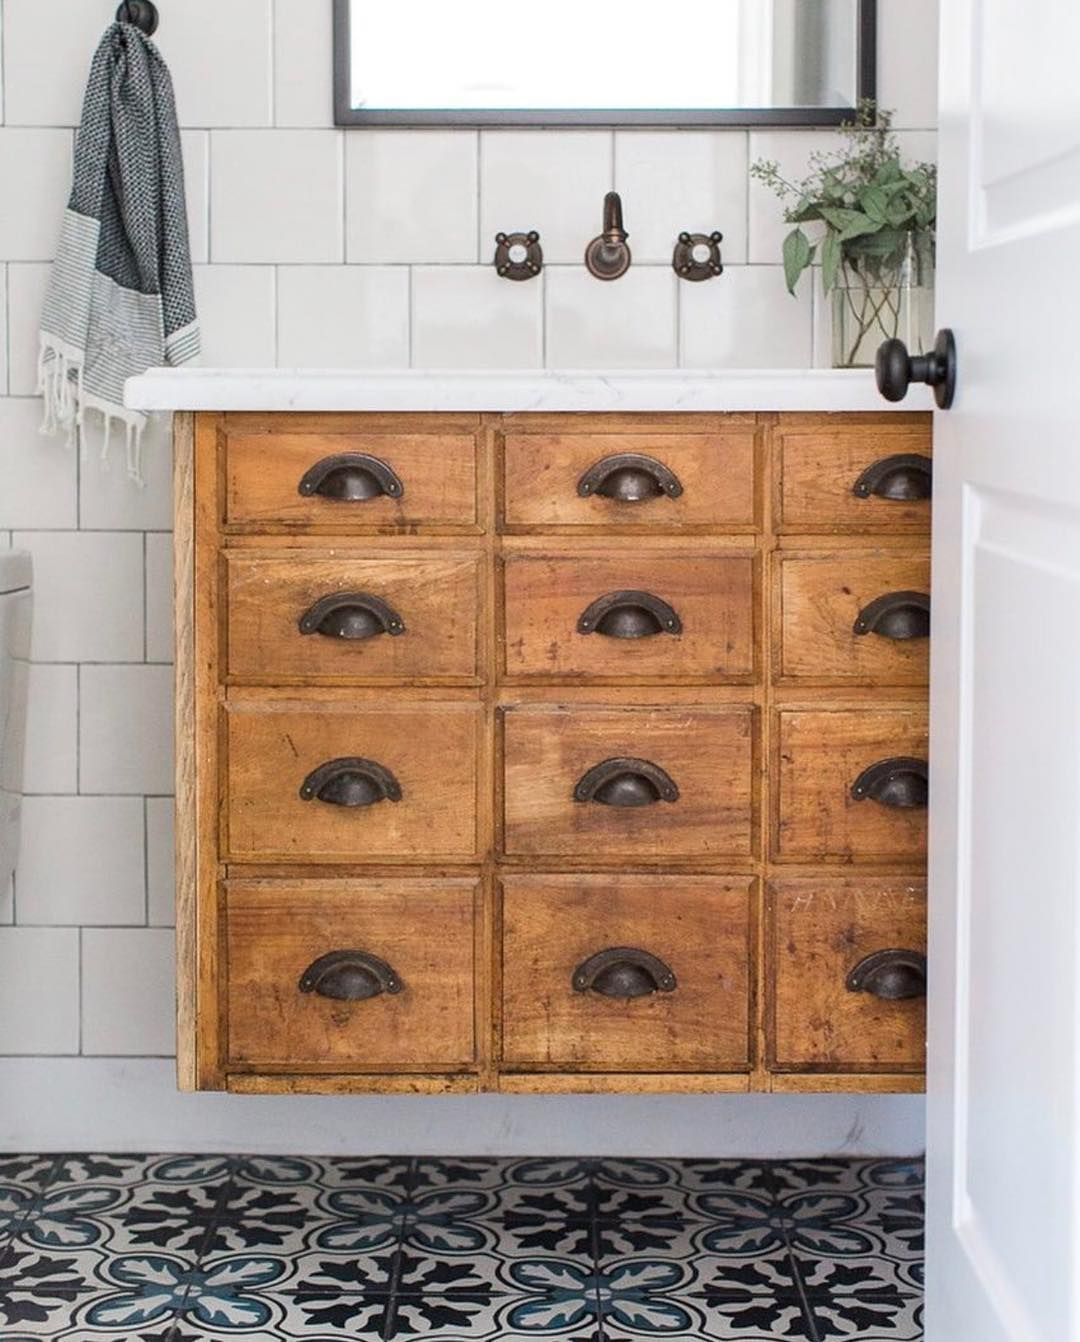 Vintage Card Catalog As Floating Bathroom Vanity // Vintage Modern Bathroom